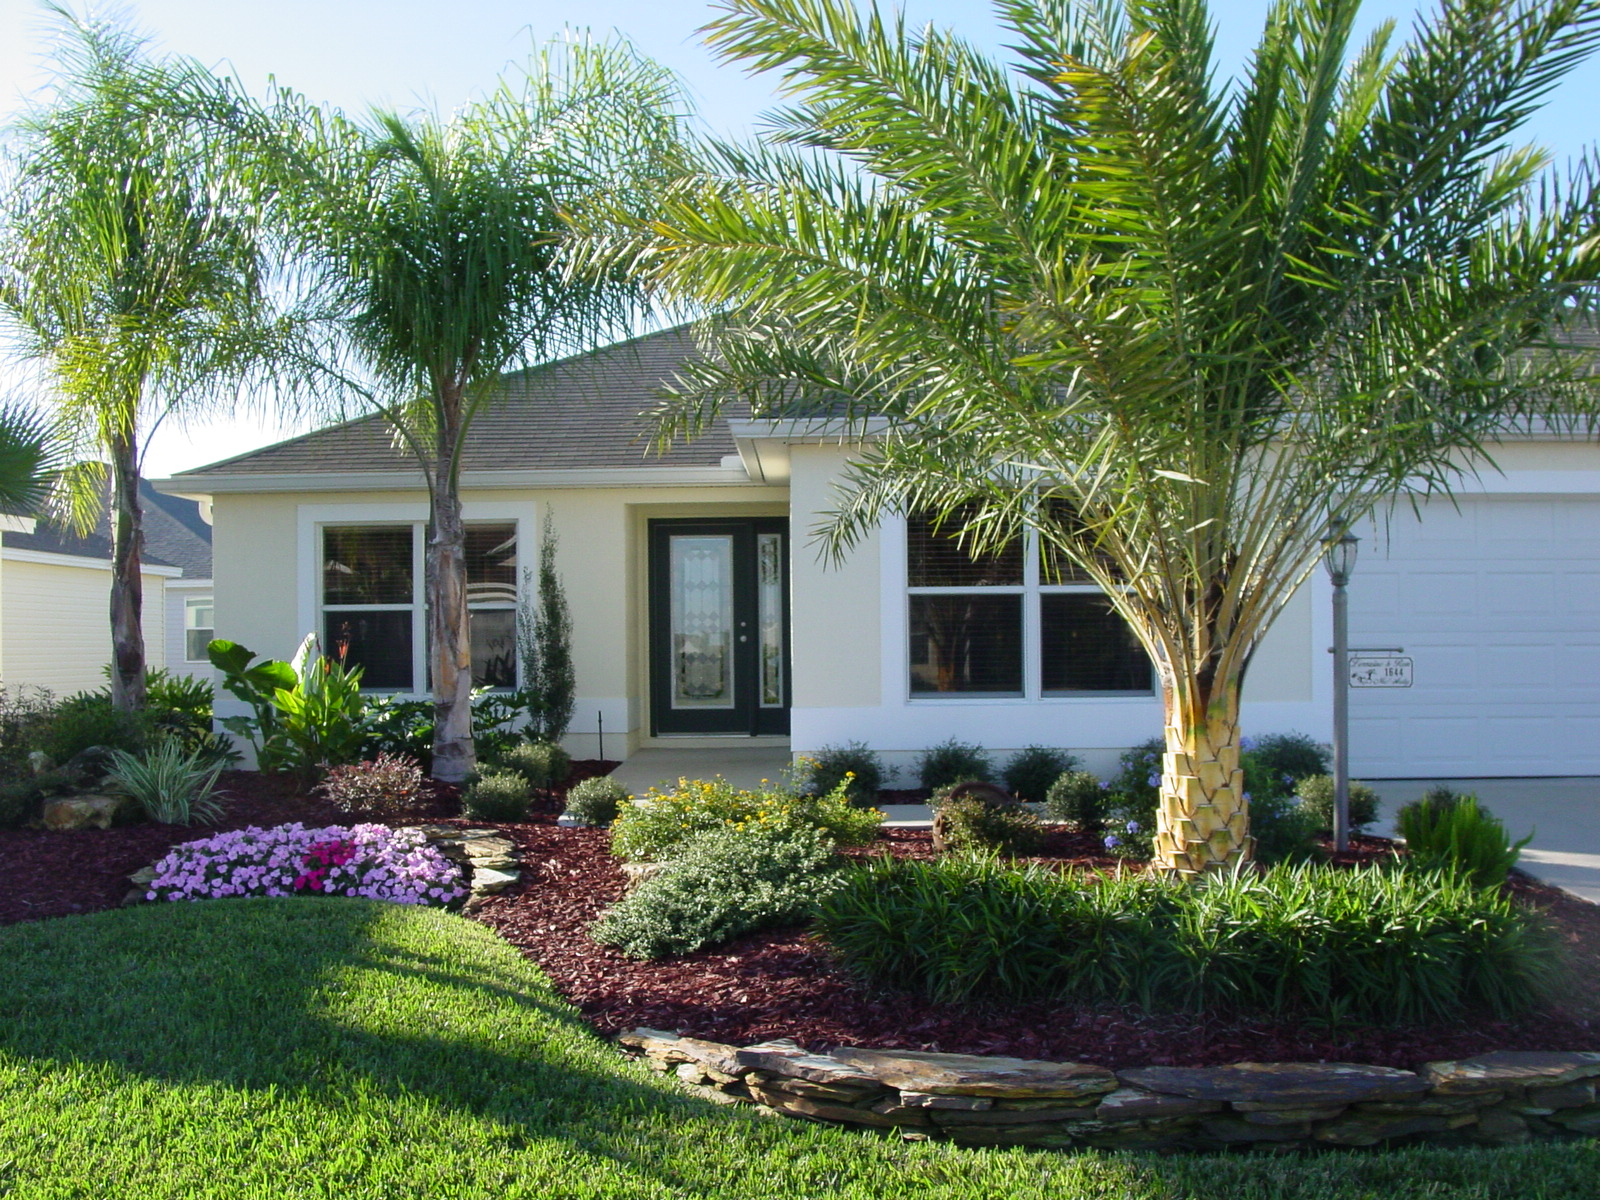 Florida garden landscape ideas photograph rons landscaping for House garden ideas